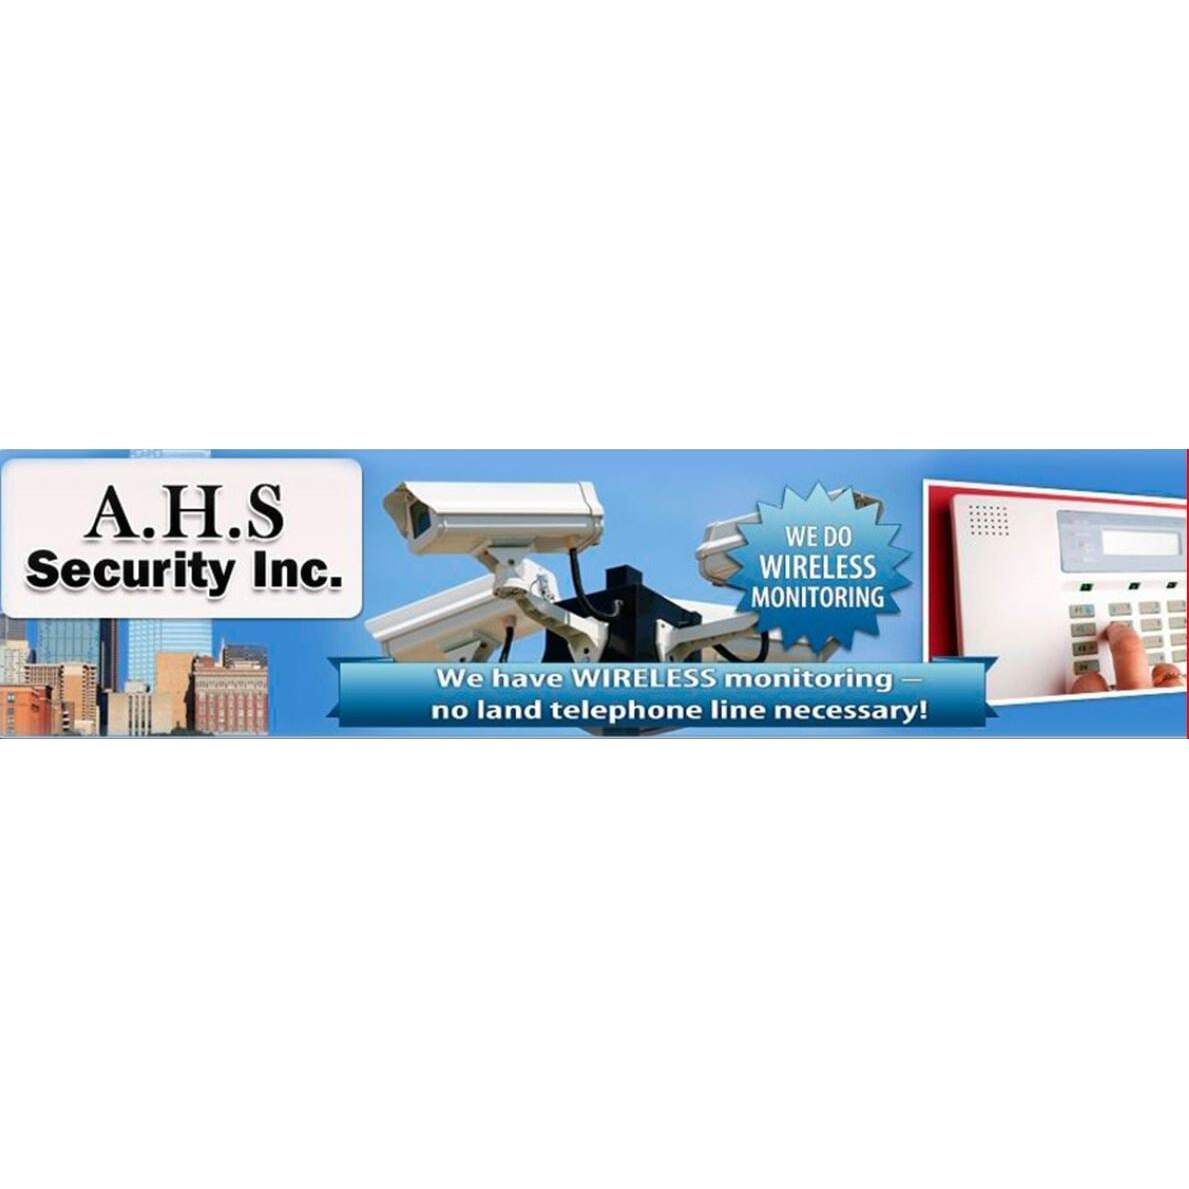 image of A.H.S. Security Inc.